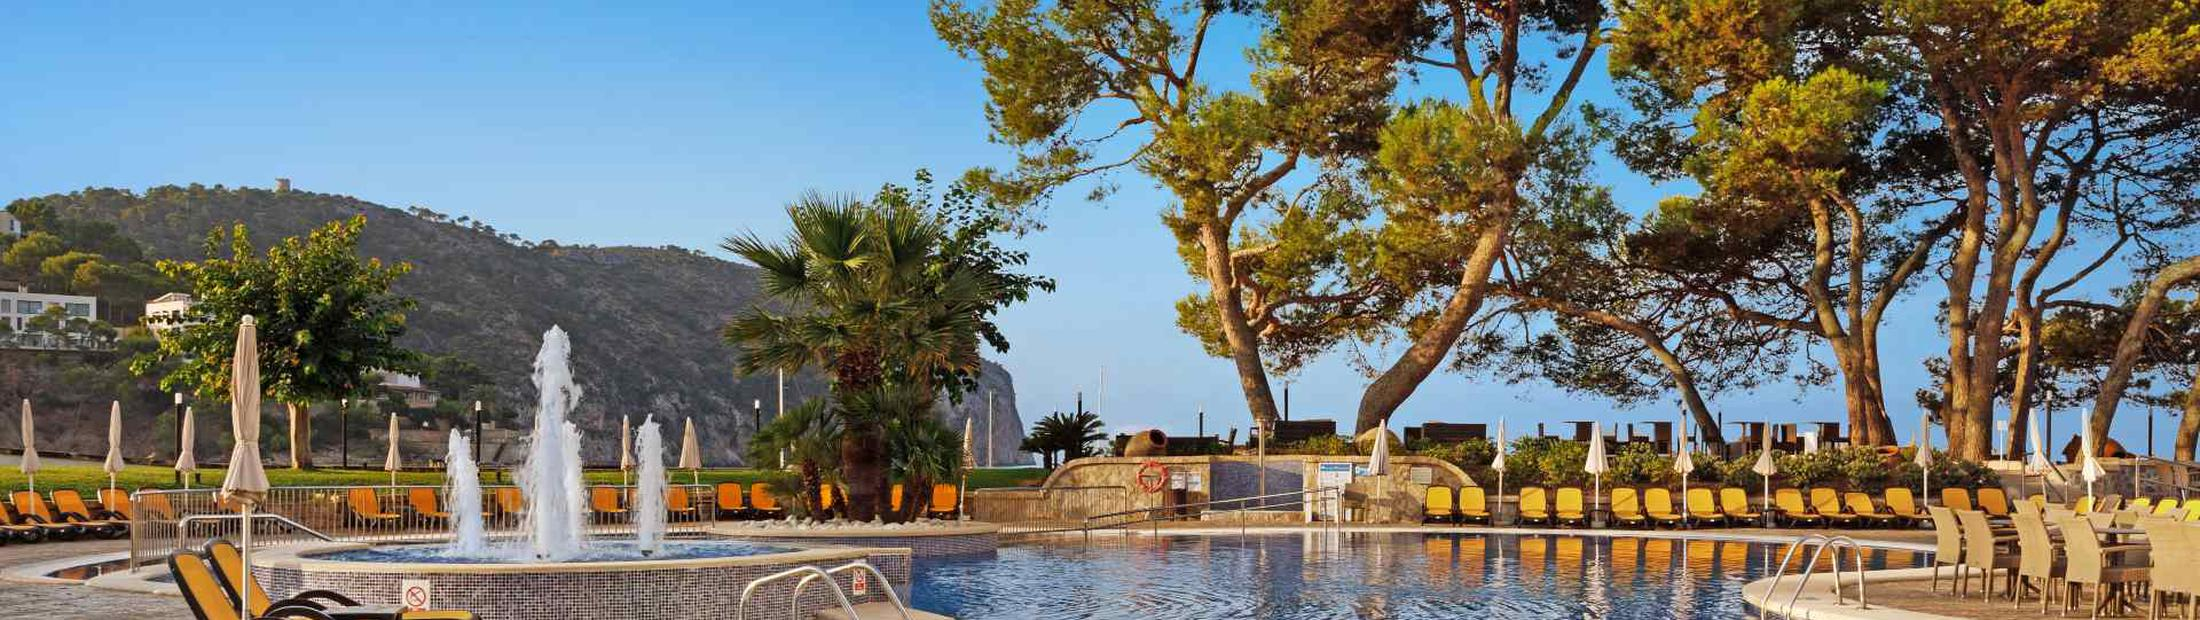 Gran Alua Camp de Mar - New incorporation AMResorts ****Hotel in Camp de Mar, Majorca Alua Gran Camp de Mar  Majorca